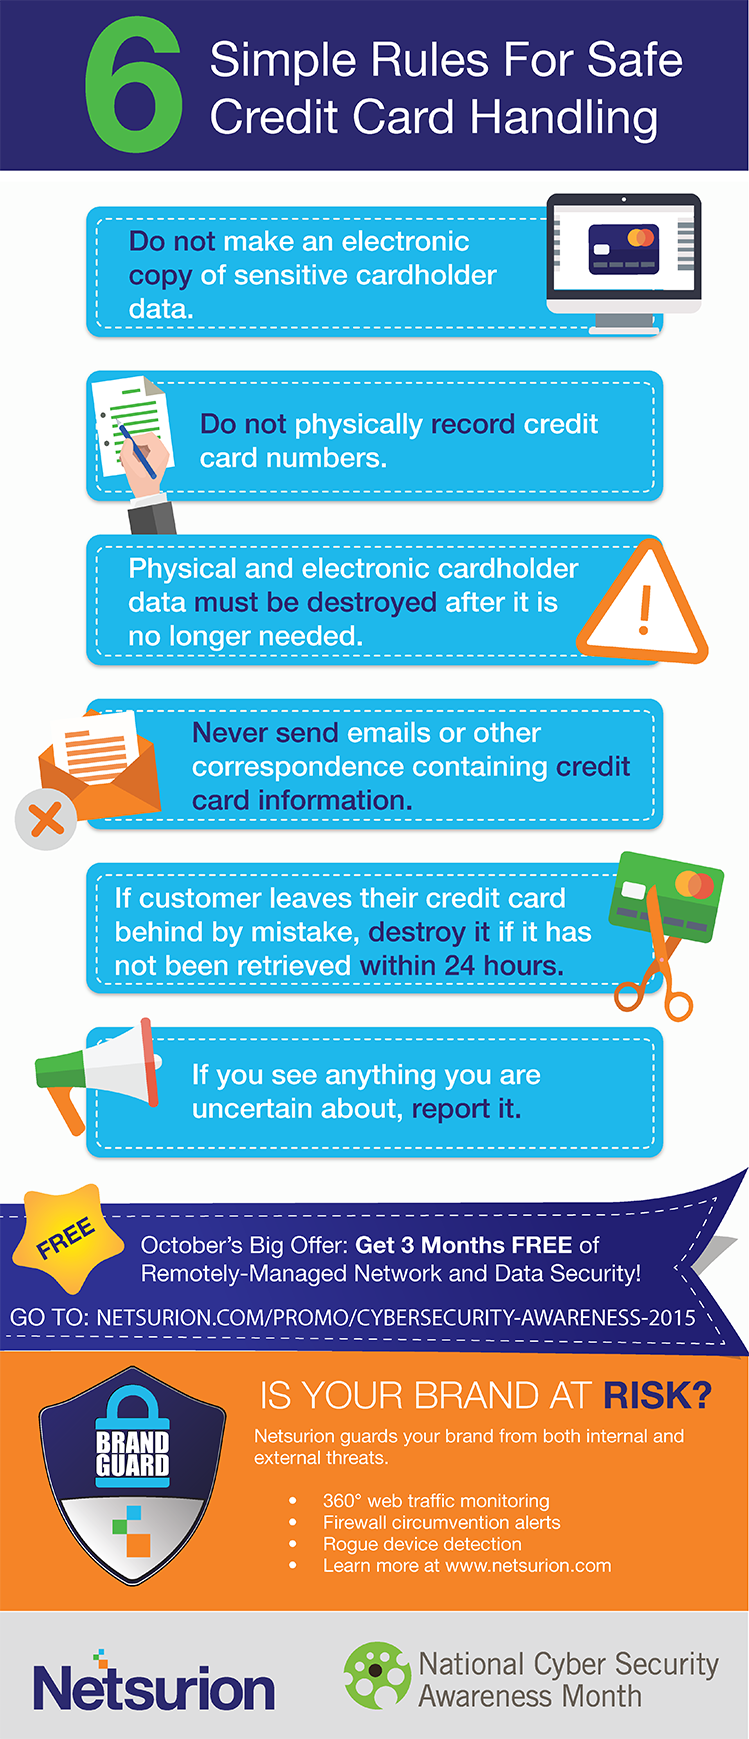 6 simple rules for safe credit card handling infographic